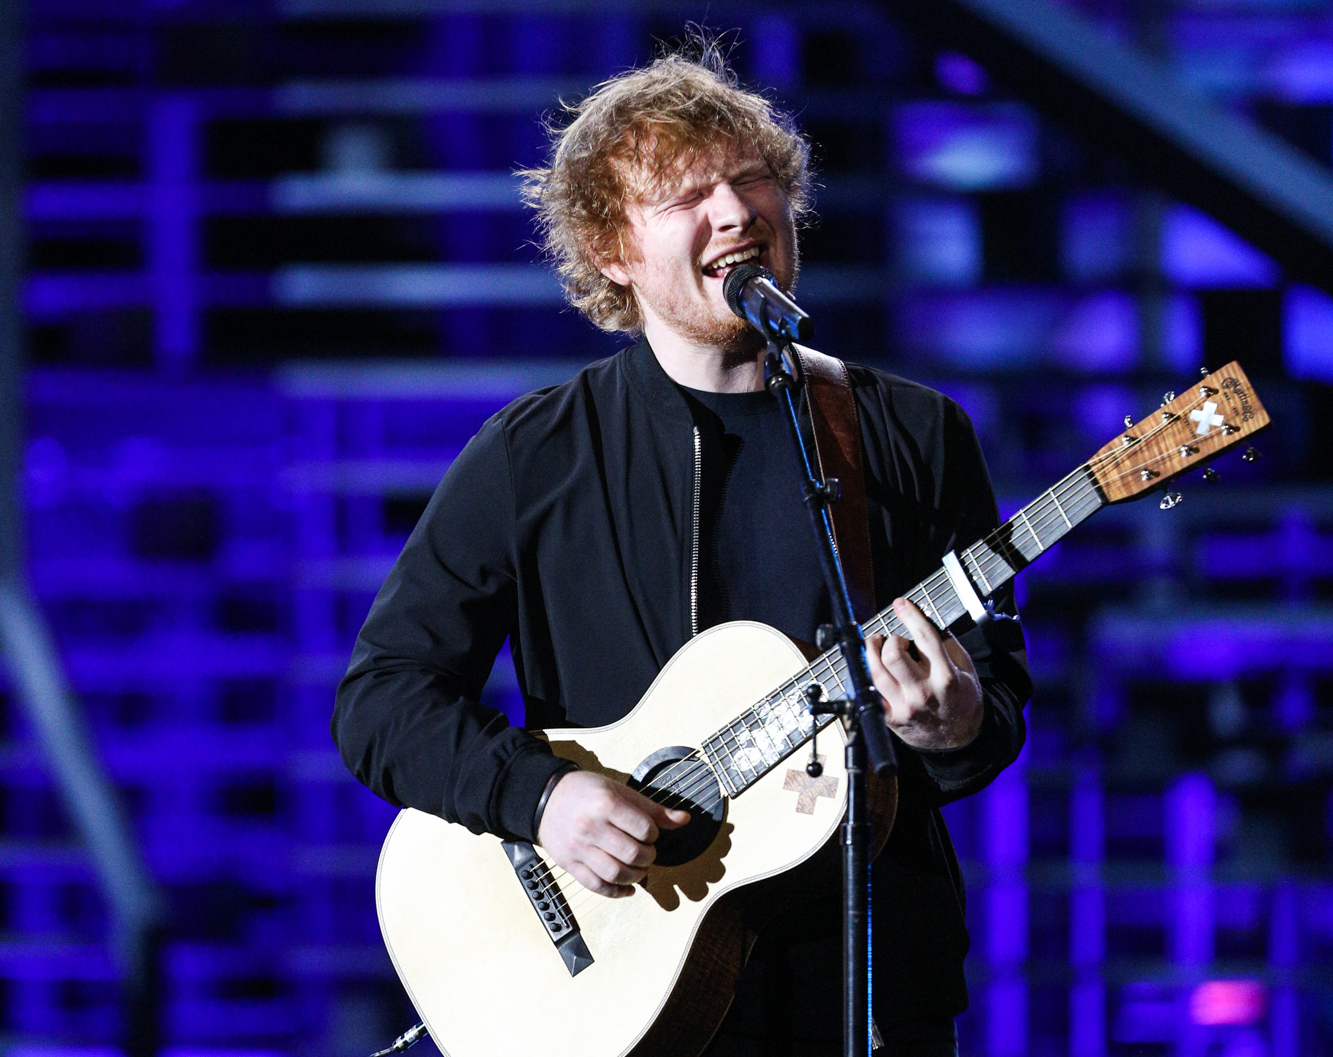 united by divide ed sheeran releases tour dates wtop. Black Bedroom Furniture Sets. Home Design Ideas